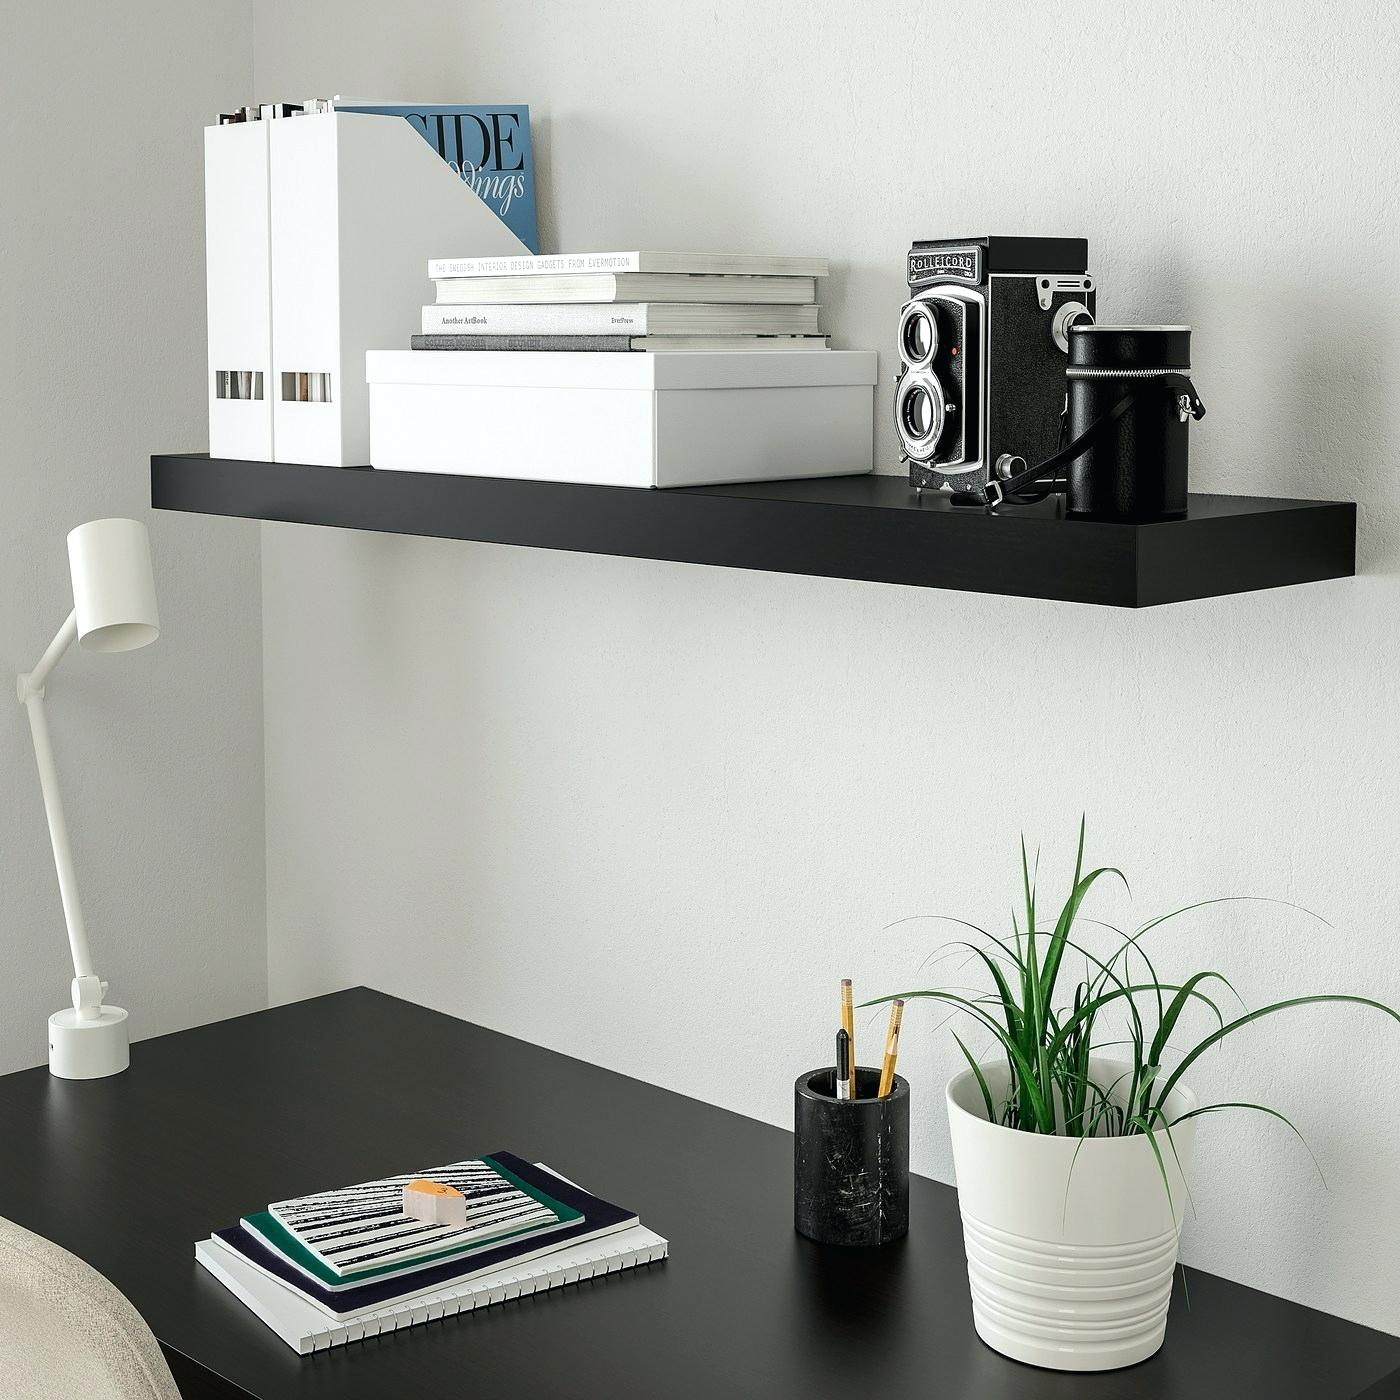 lack wall shelf black brown ikea floating shelves hanging wood contemporary desk elc car garage for xbox small media console kitchen holders homemade bathroom mounted coat hanger